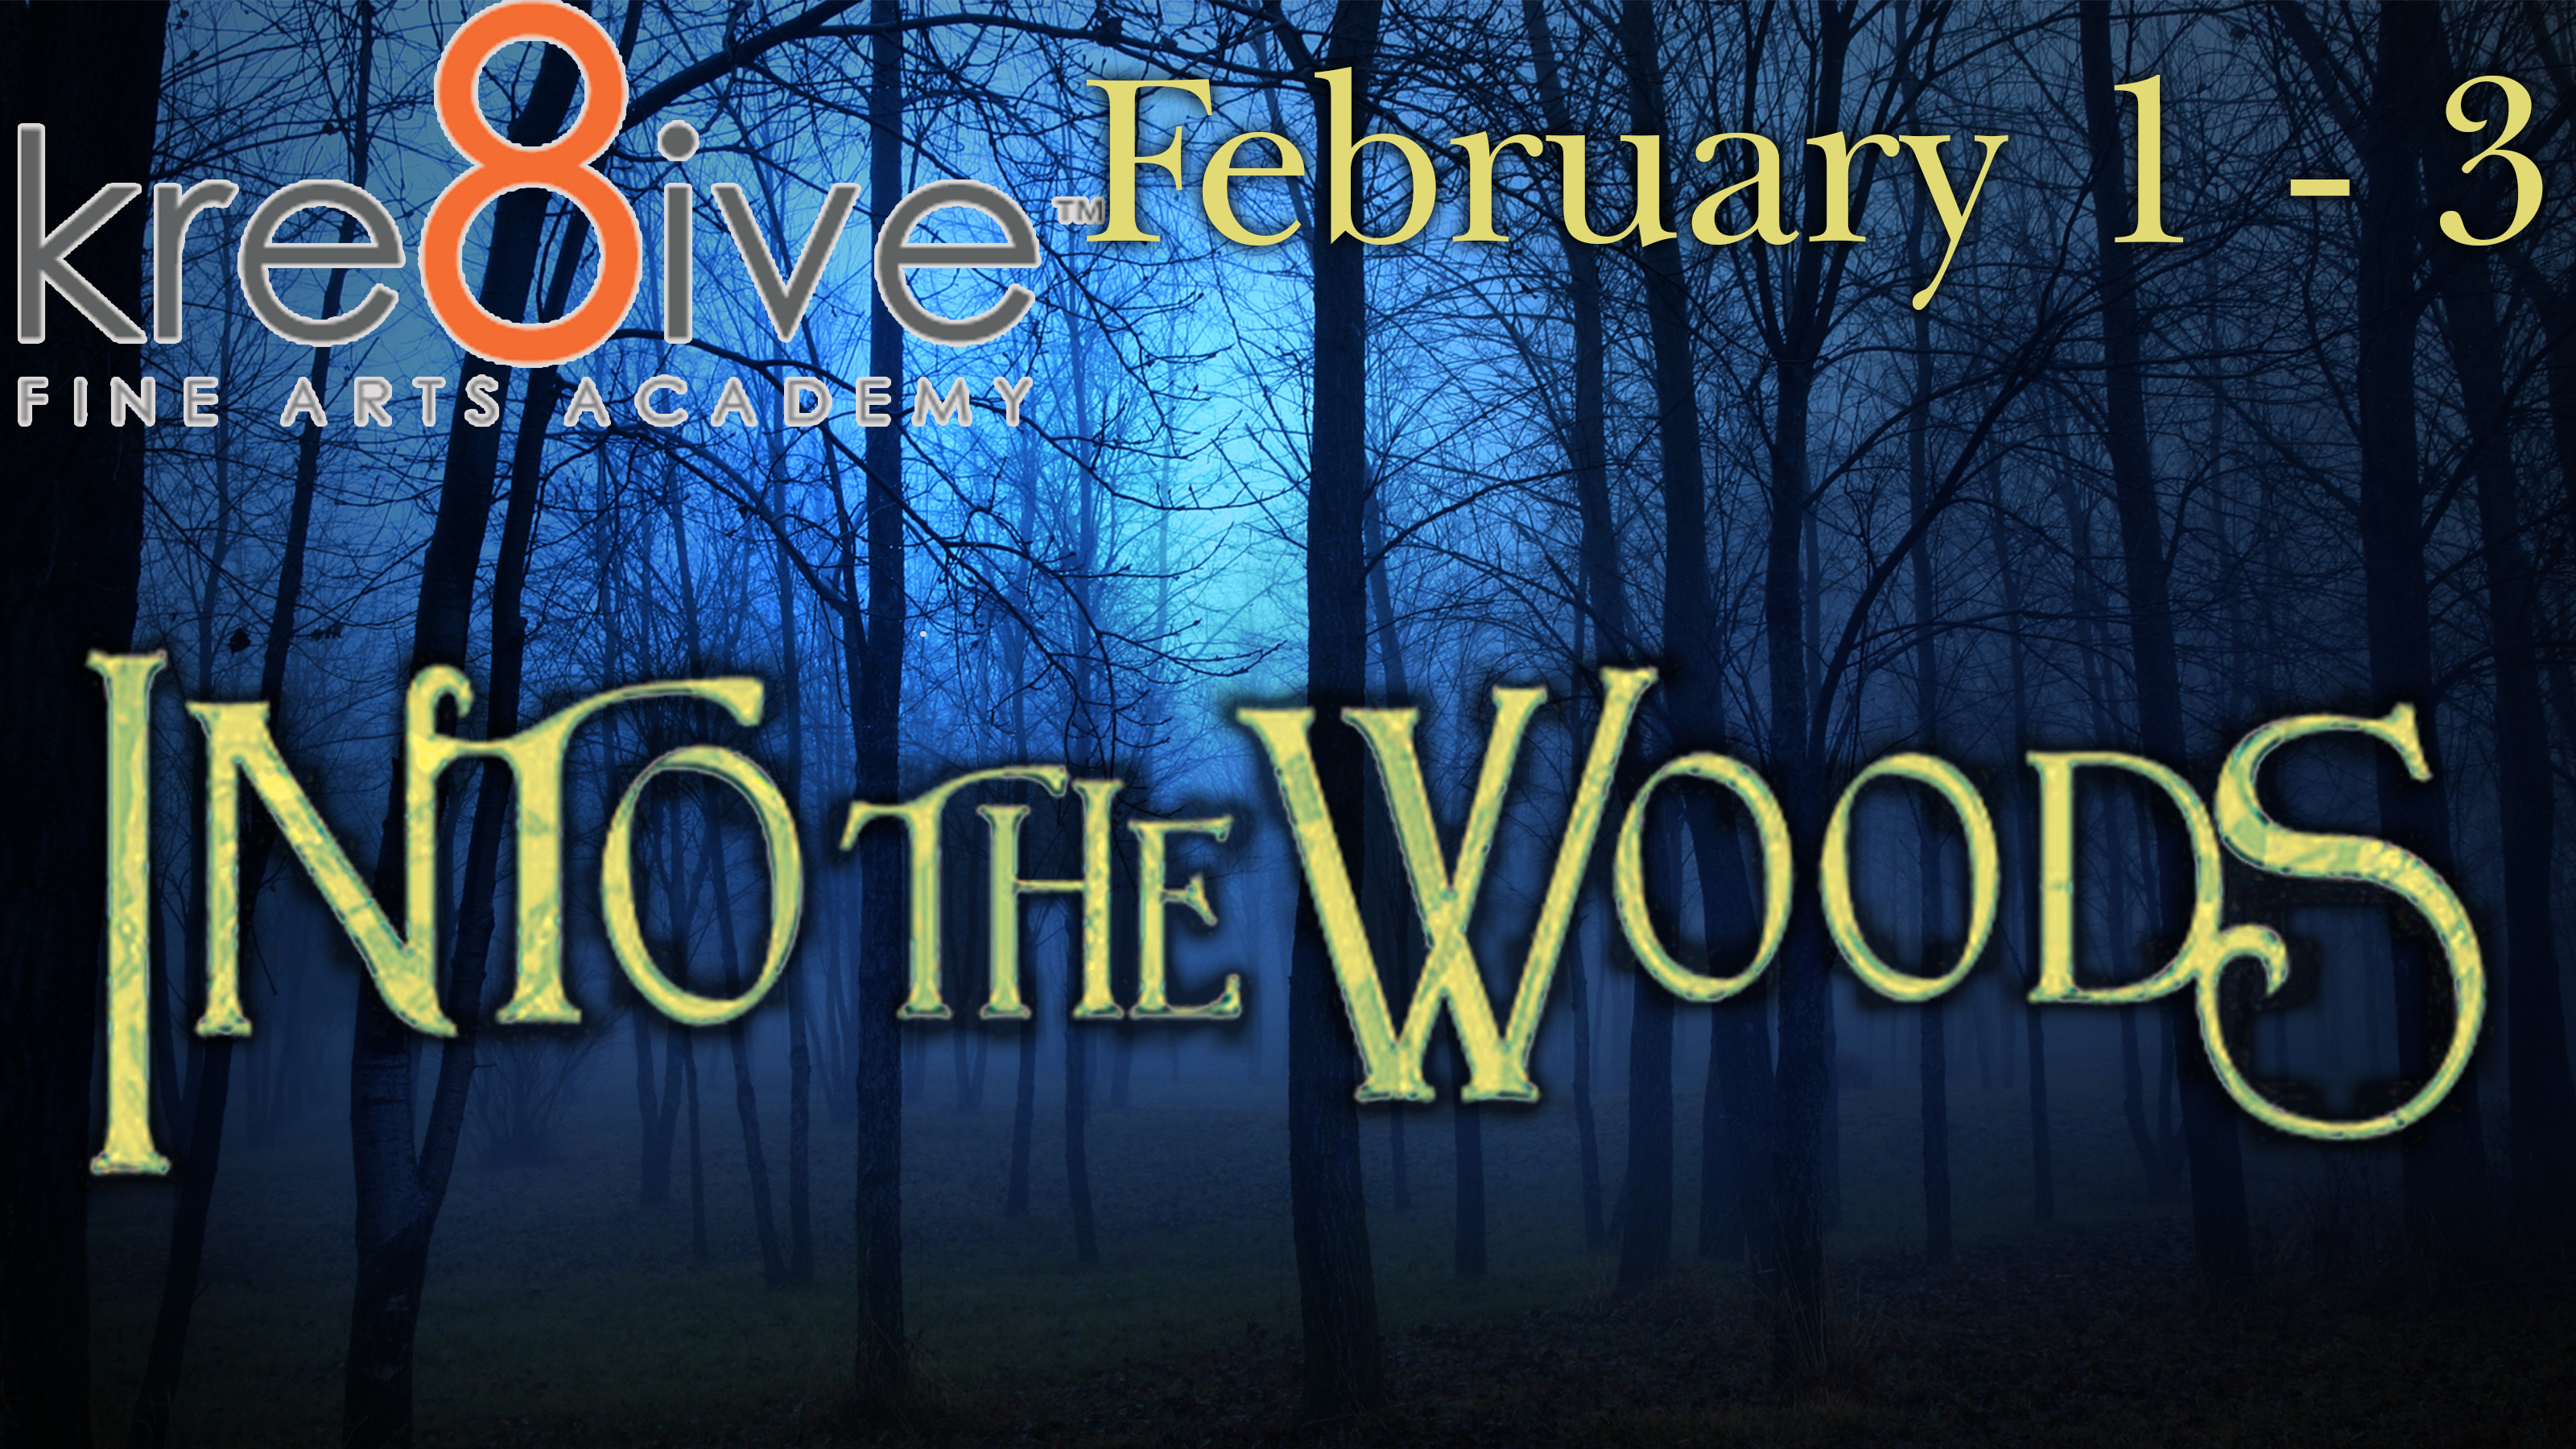 Into the Woods - February 1 - 3